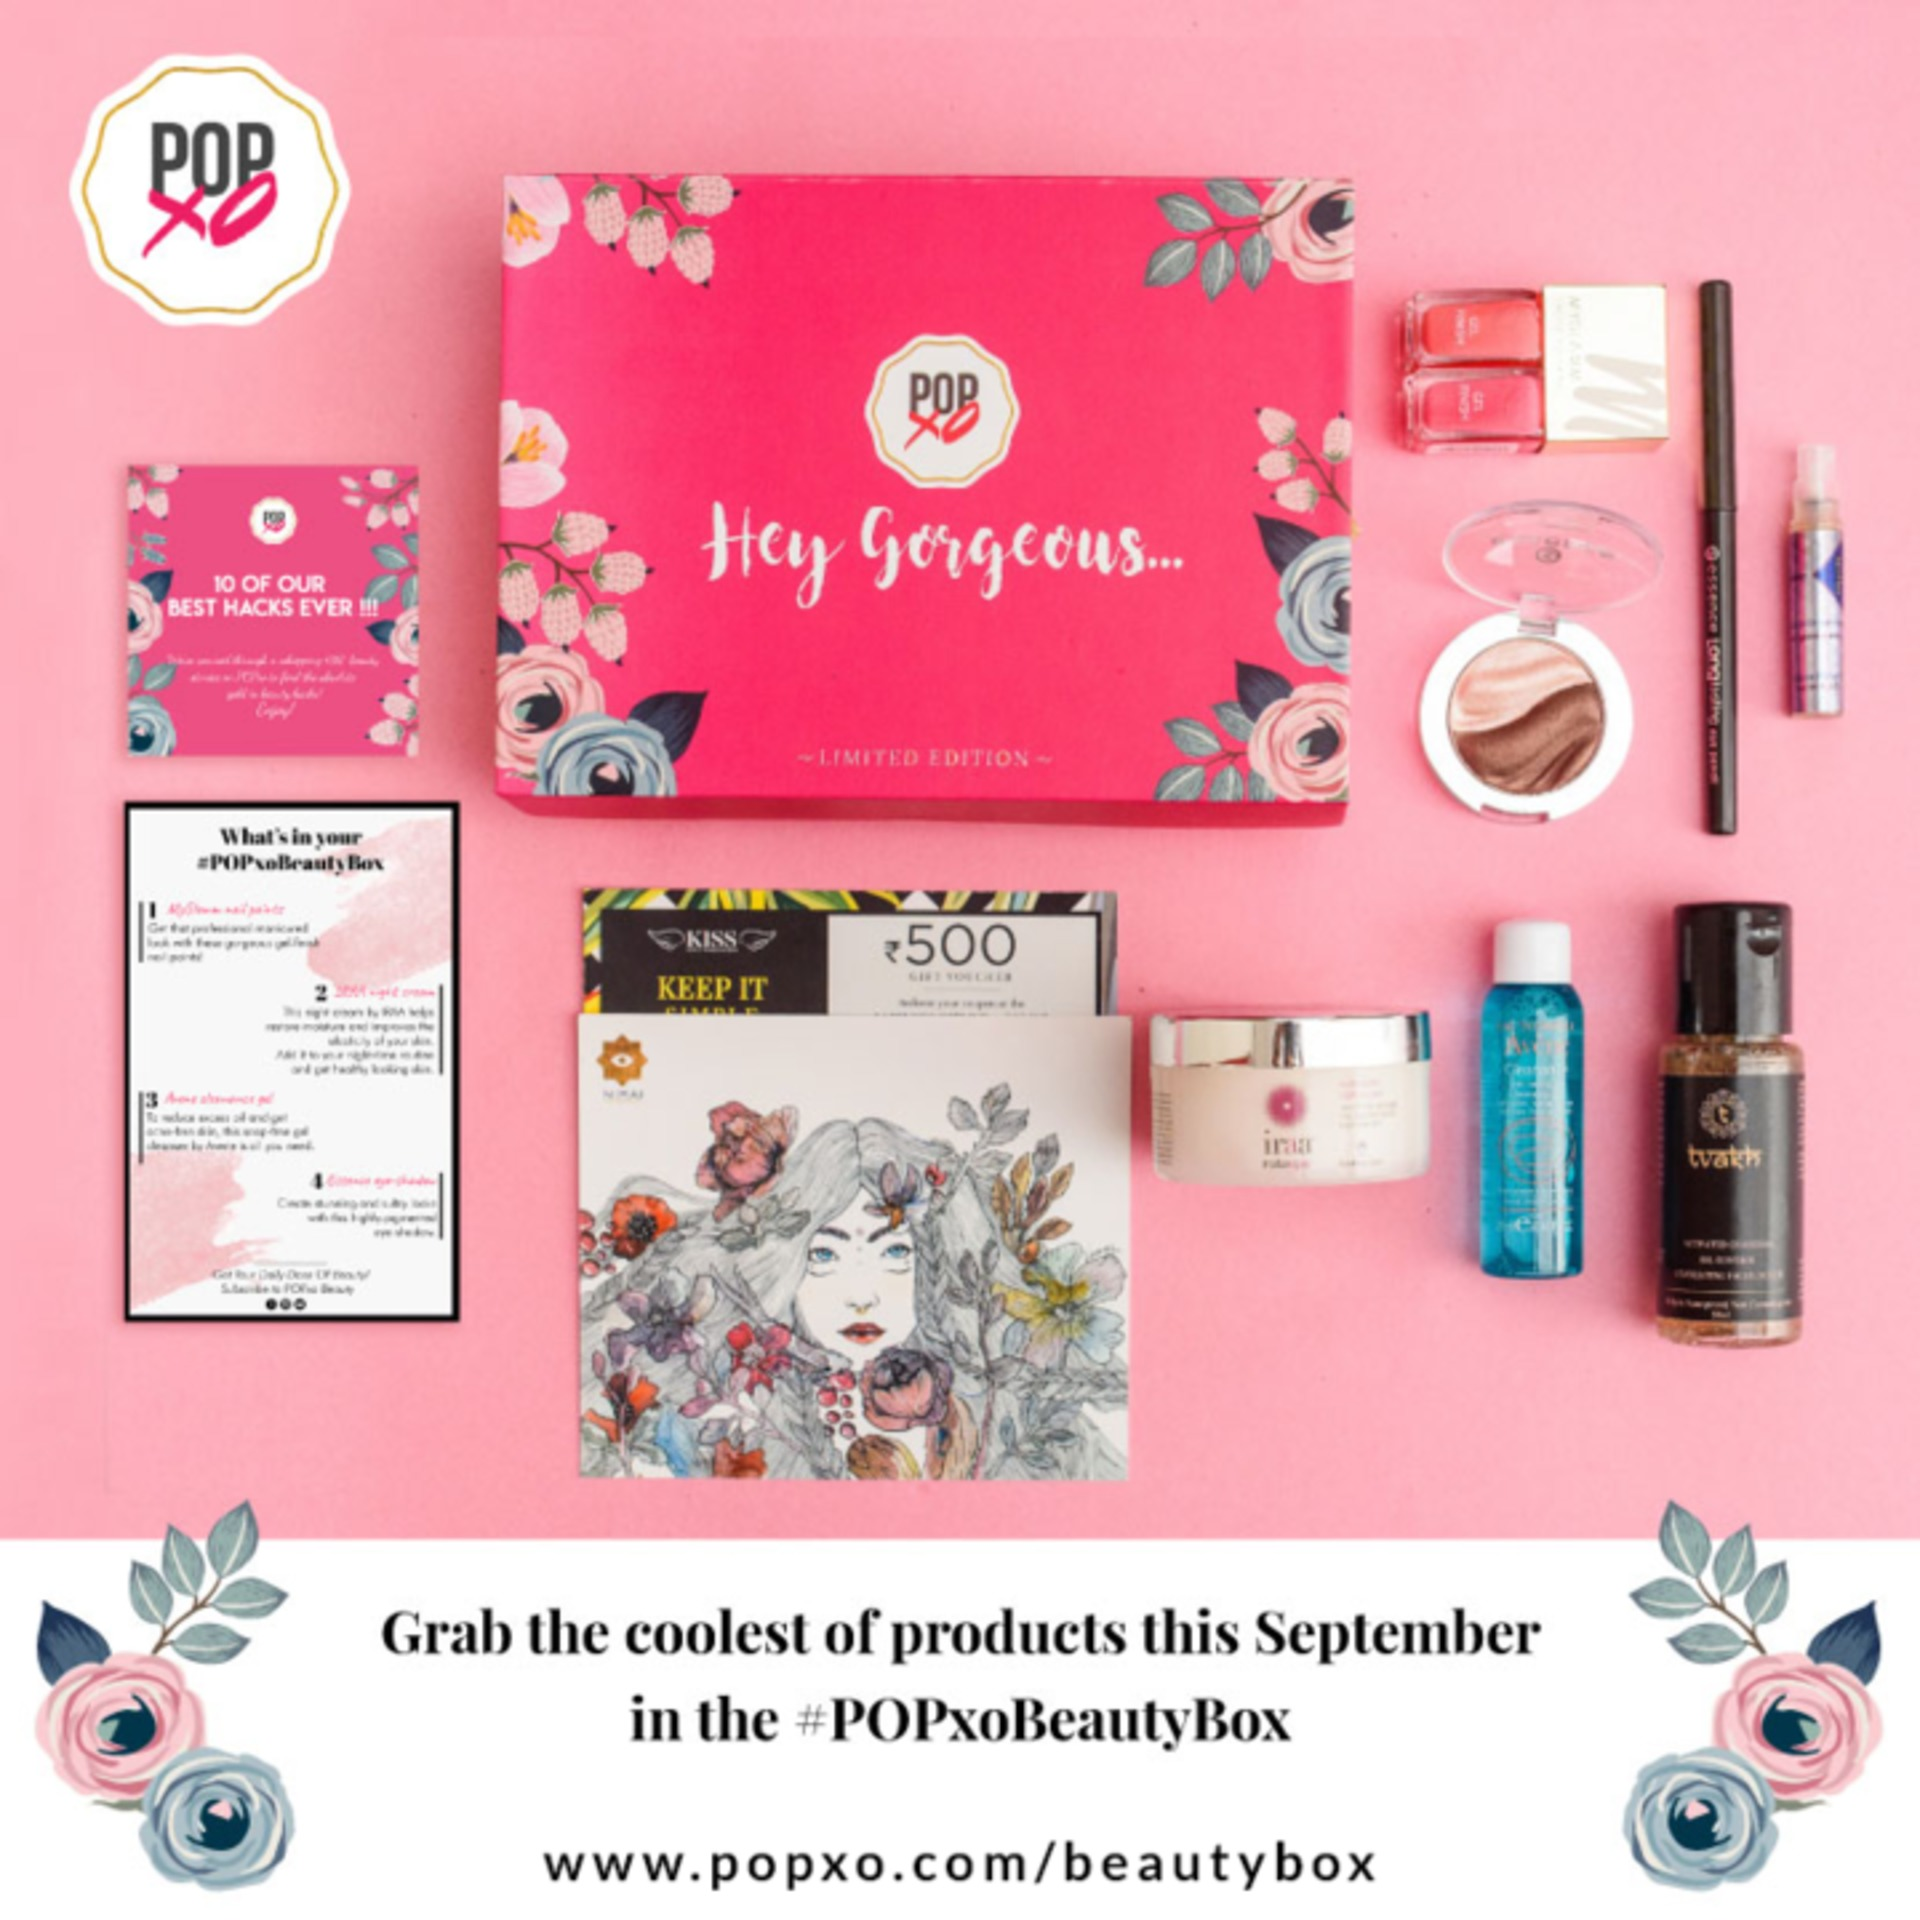 POPxo X My Envy Box image